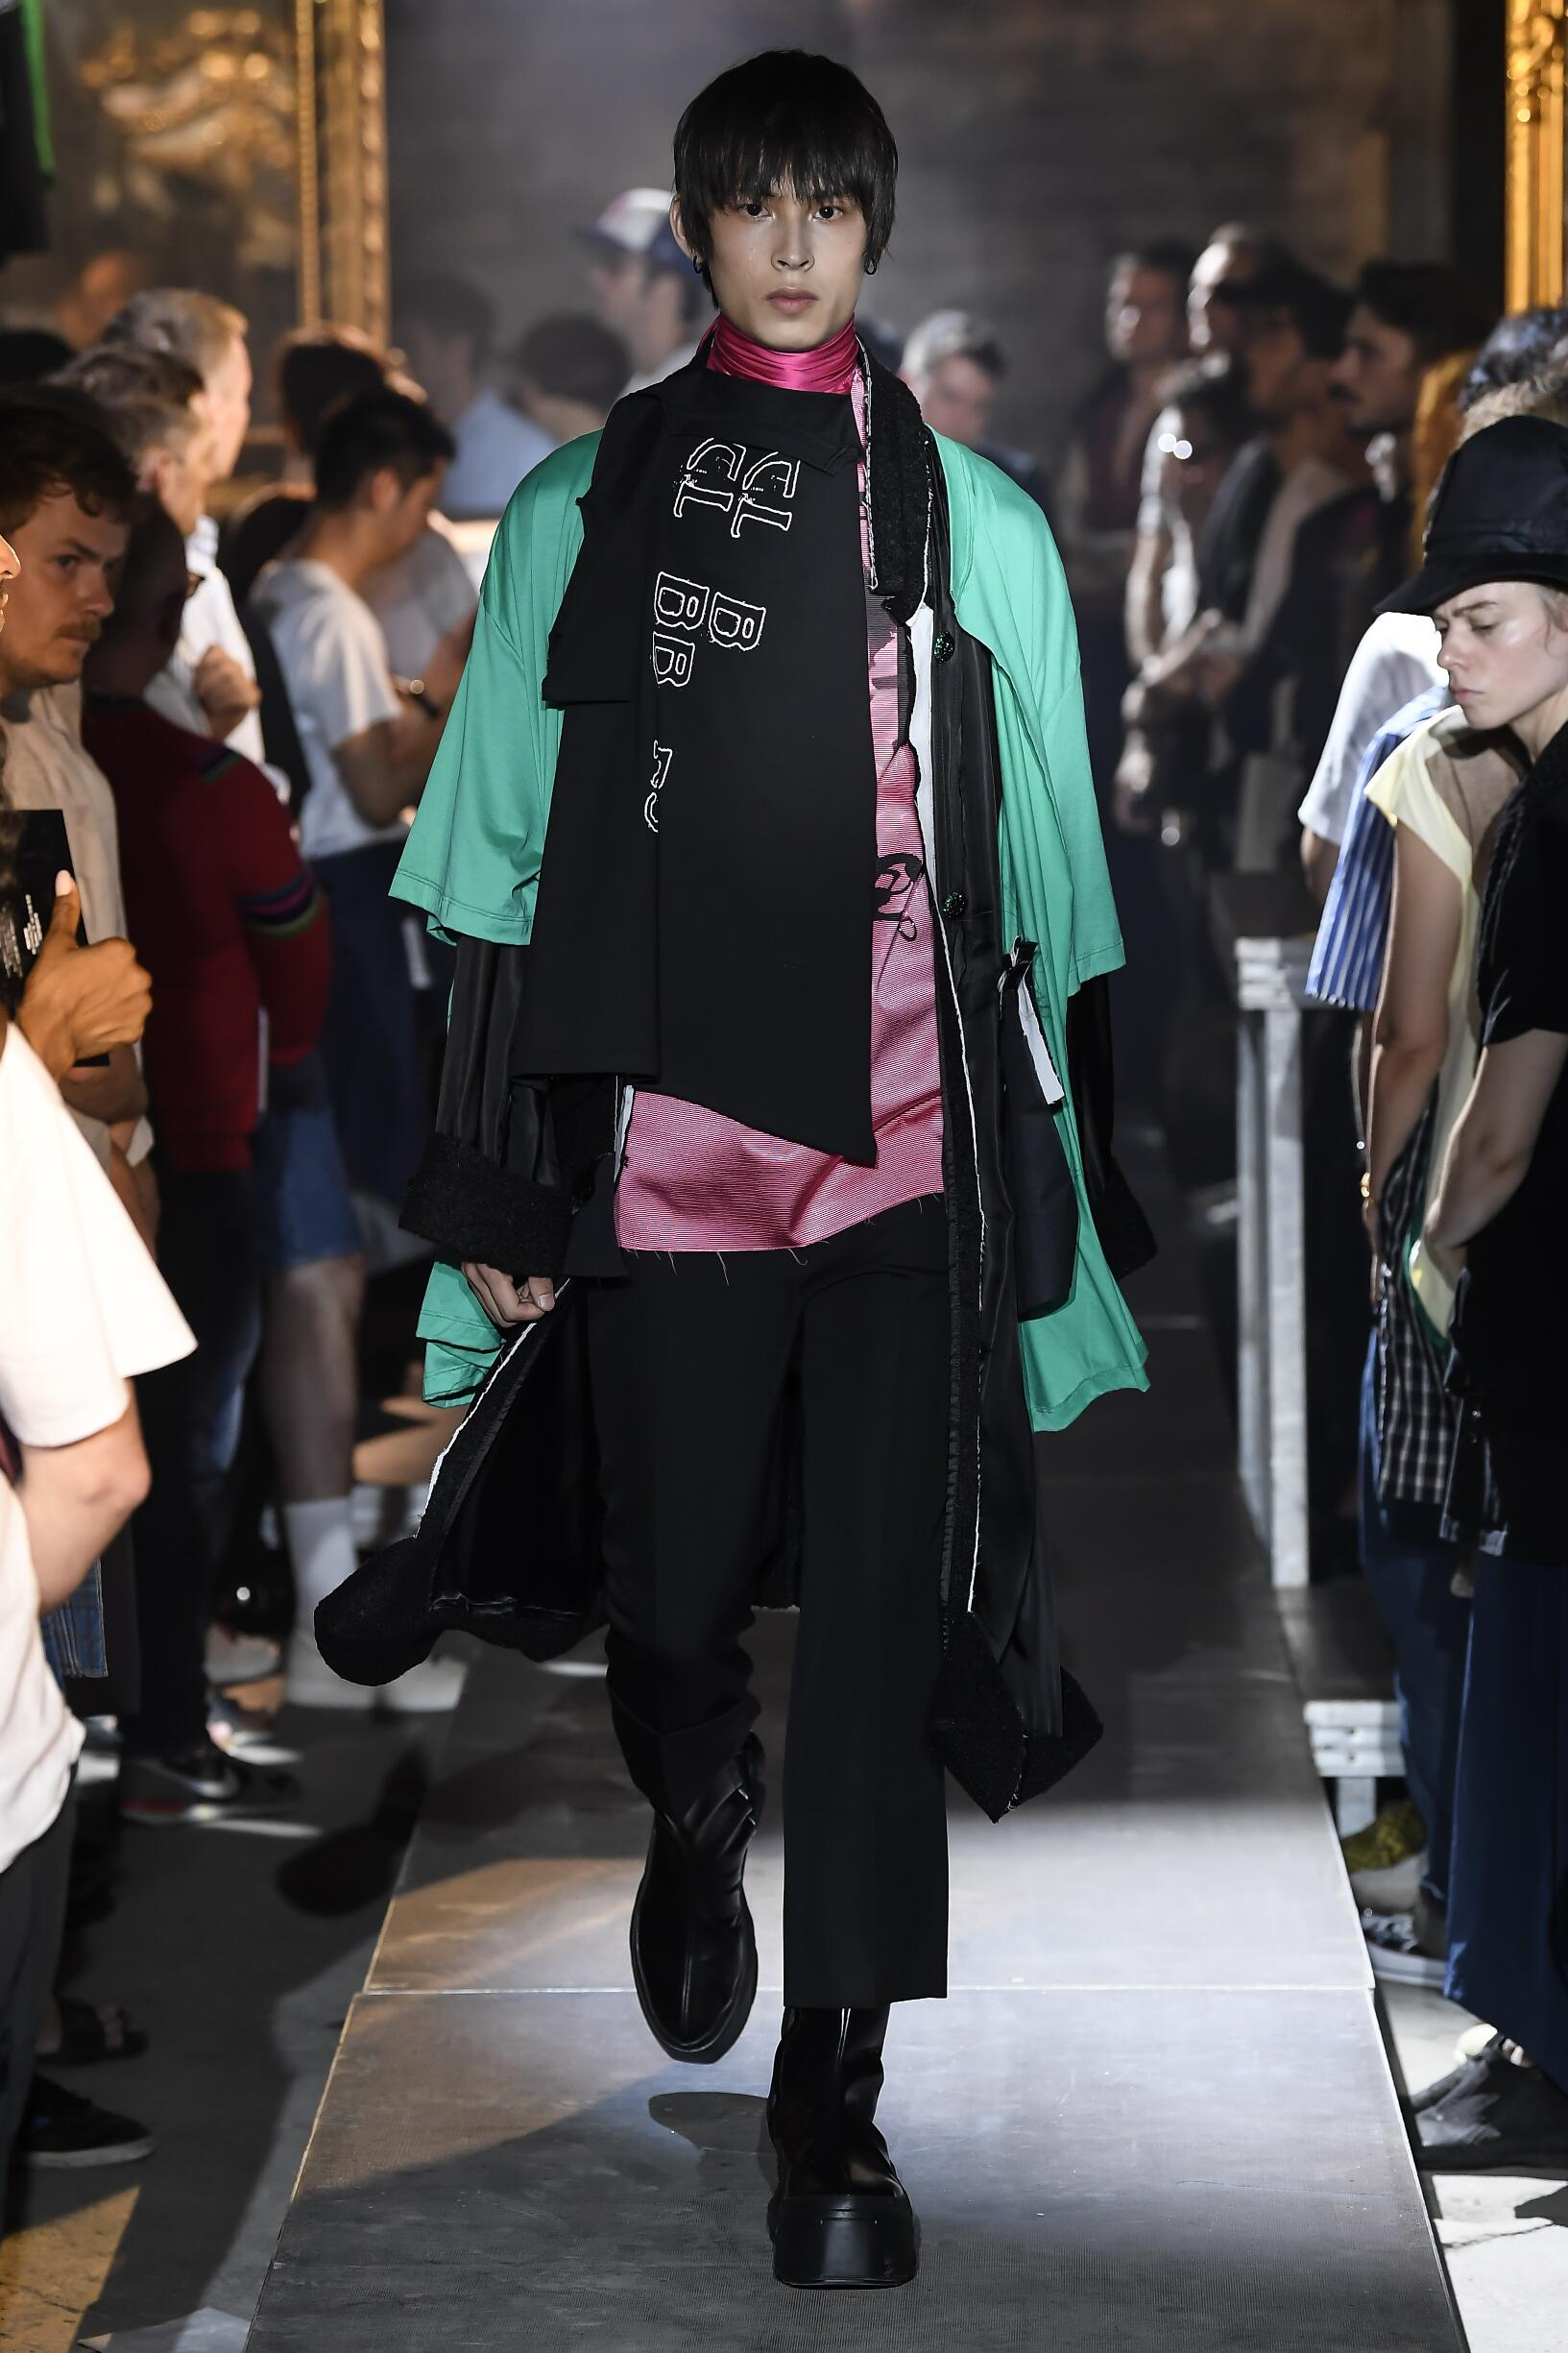 SS 2019 Raf Simons Fashion Show Paris Fashion Week